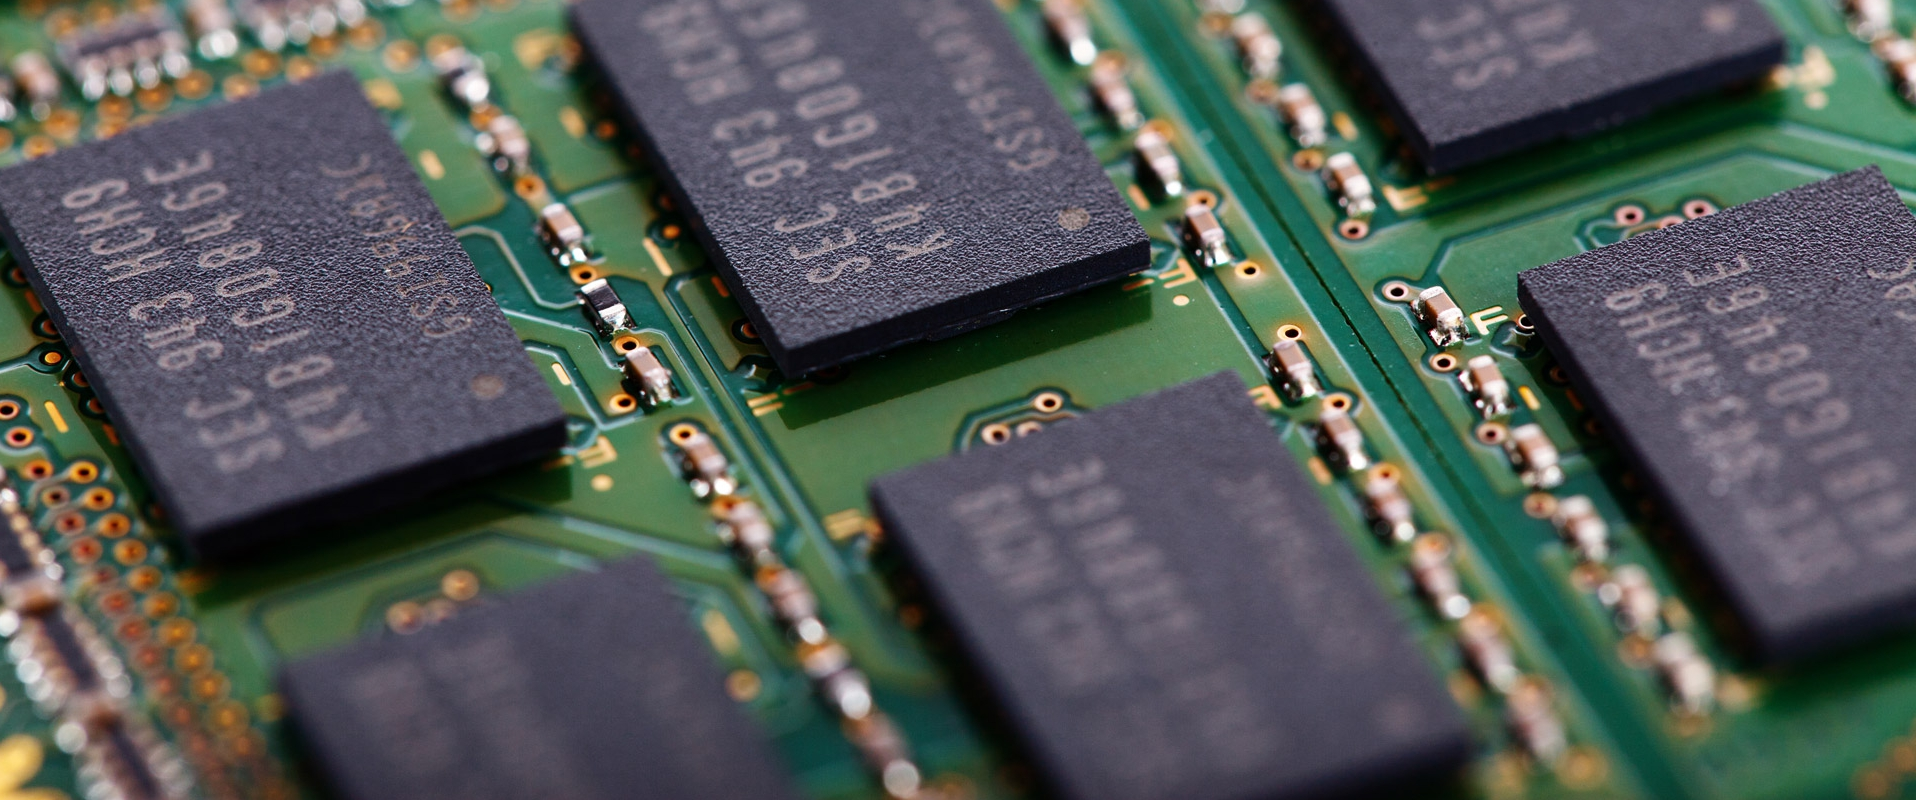 essay about computer engineer In the future, the computer security industry will be run by the insurance industry   engineers and scientists have built more and better products, and the guiding.